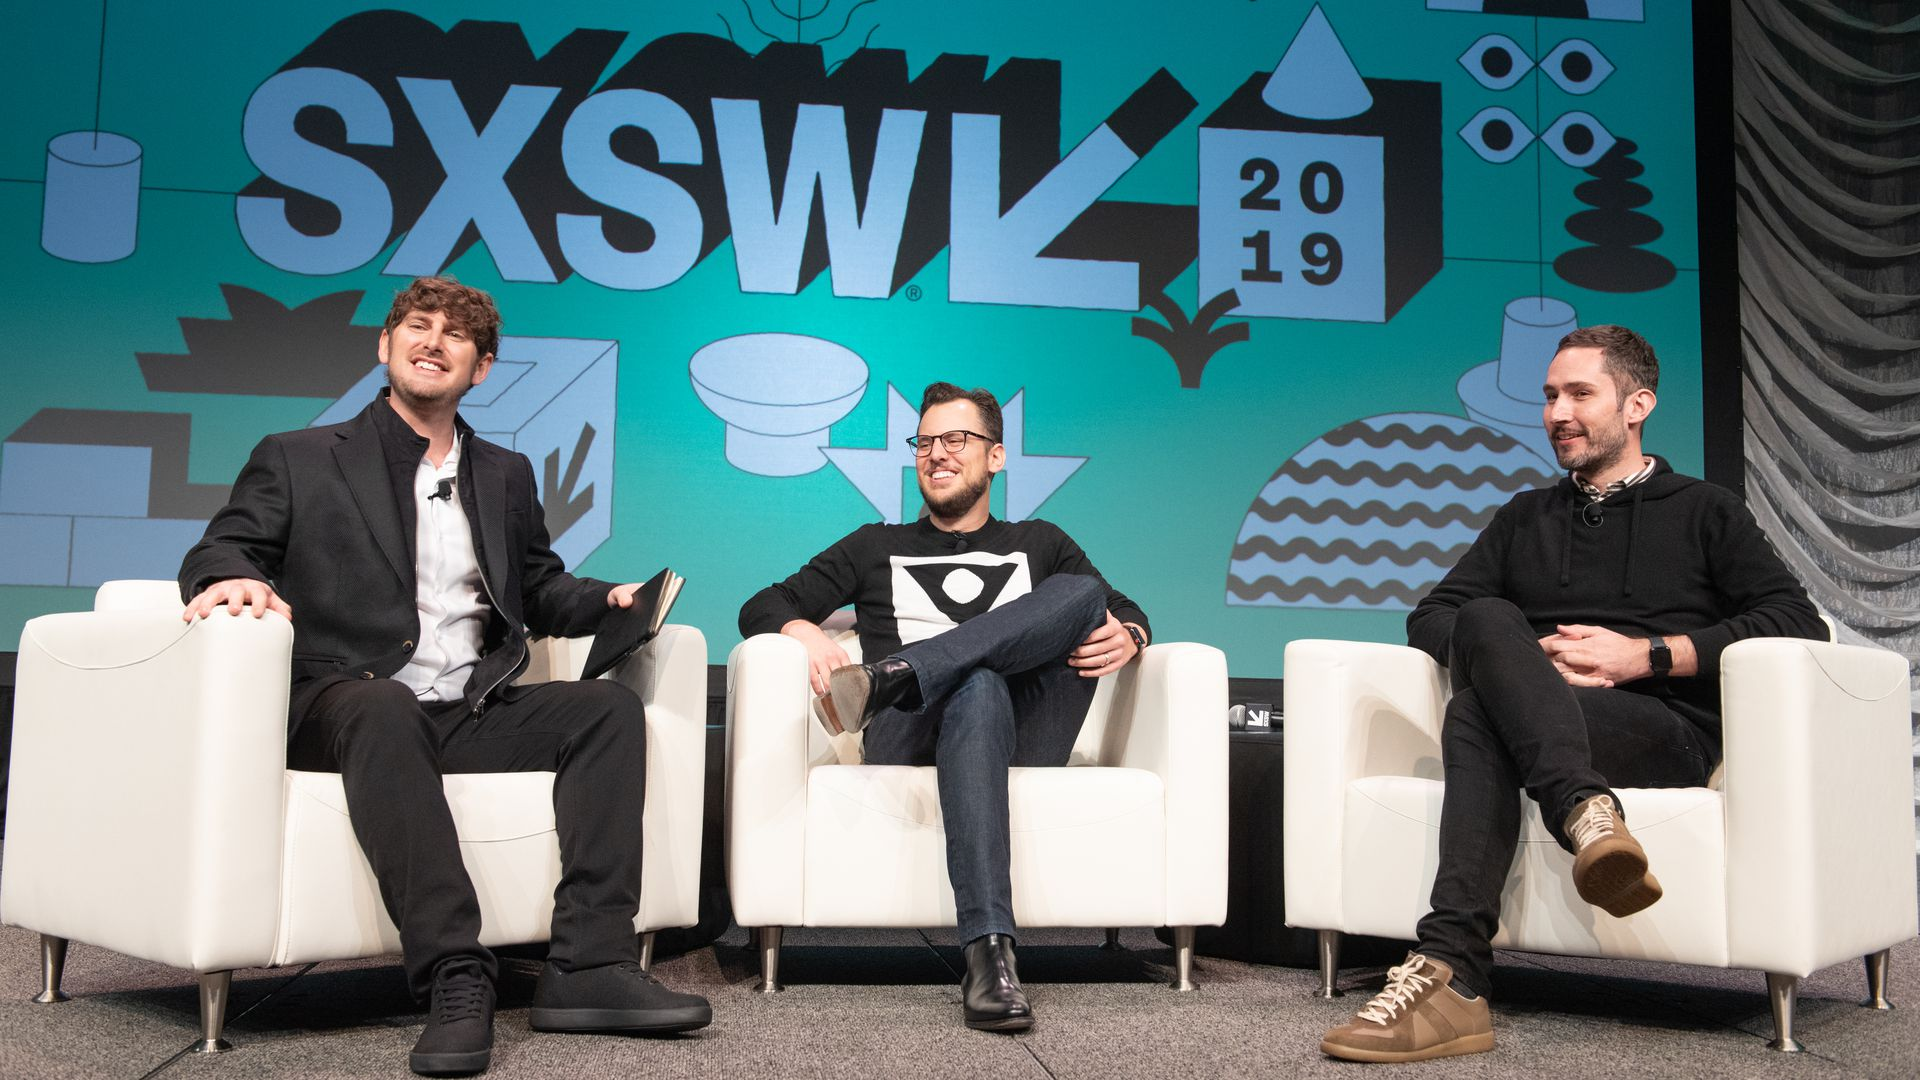 Tech Crunch editor-at-large Josh Constine (L) interviews Instagram co-founders Mike Krieger (C) and Kevin Systrom live on stage during the 2019 SXSW Conference